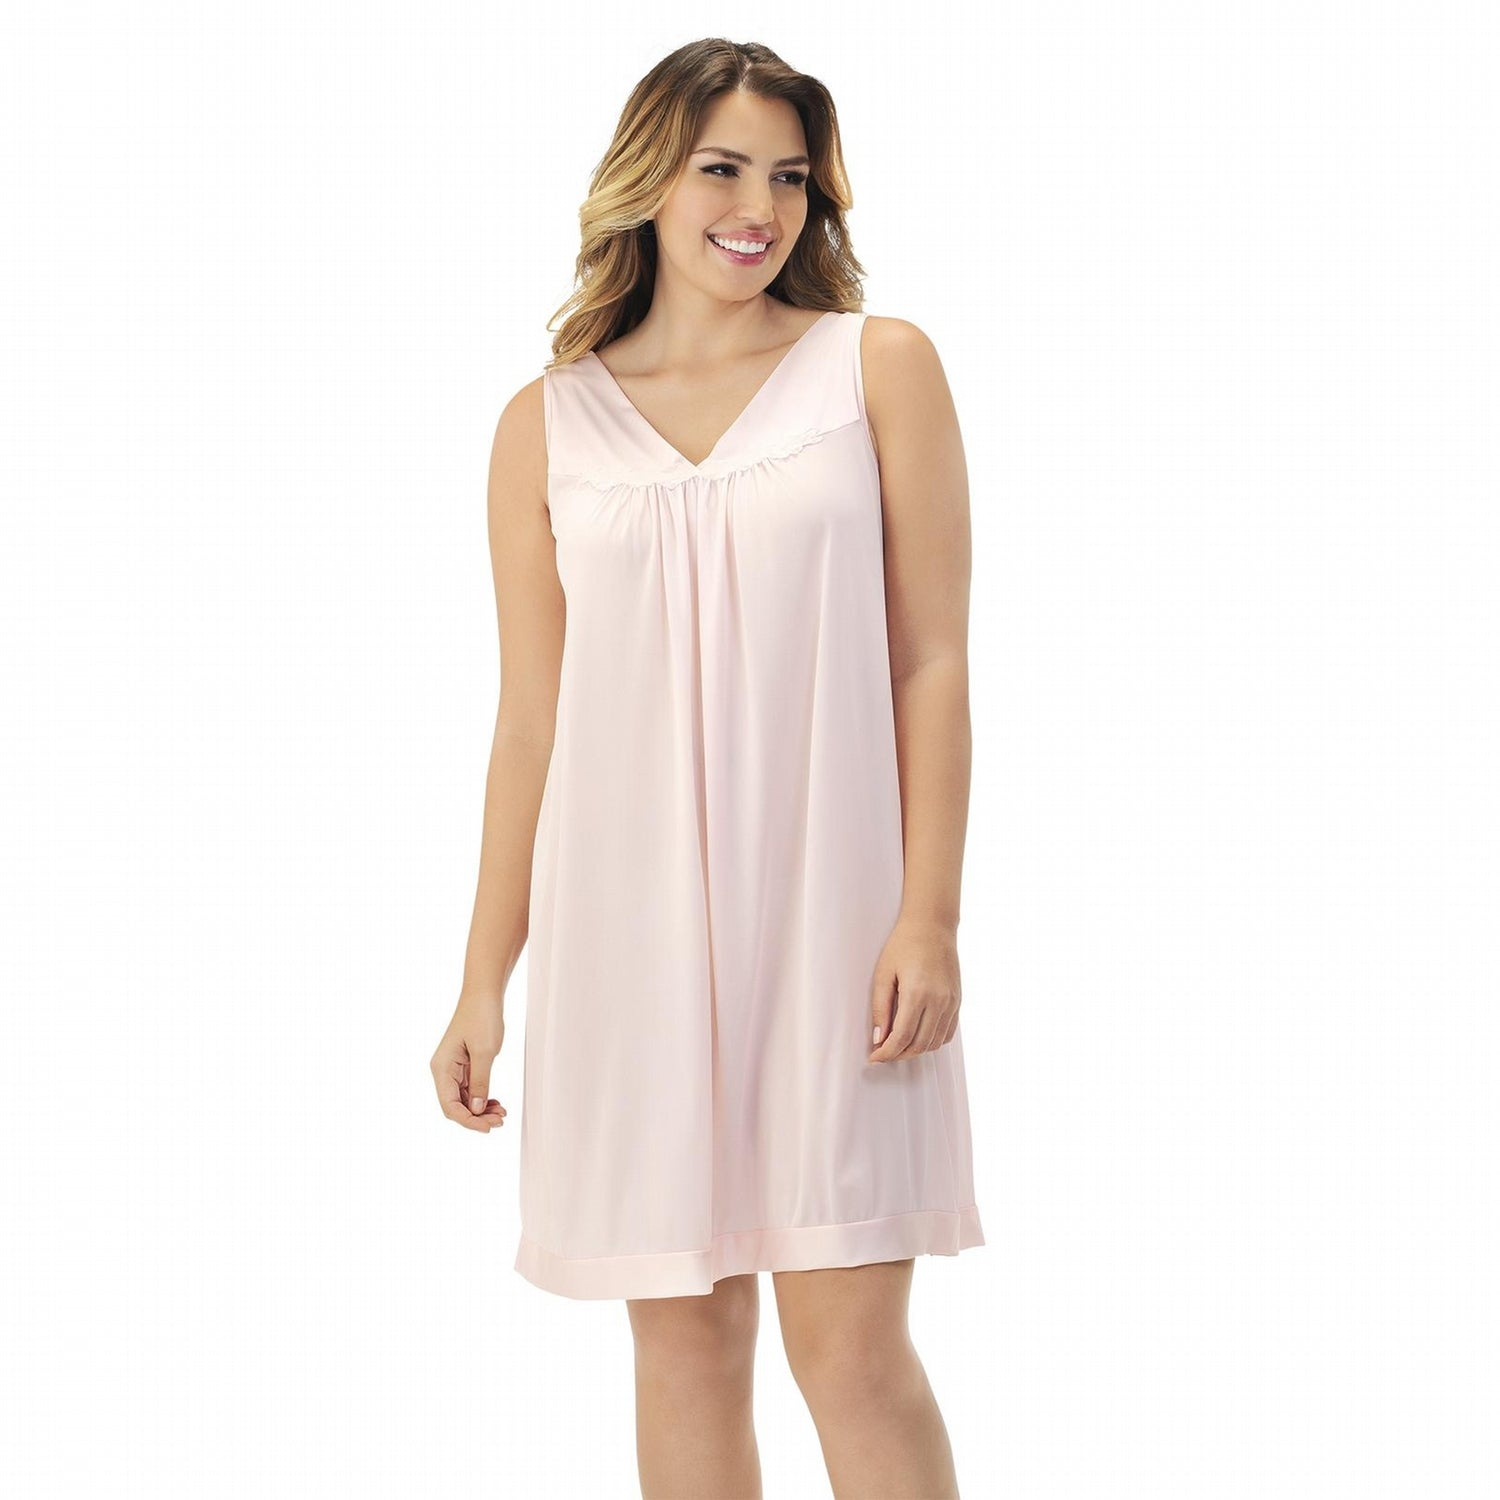 EXQUISITE FORM 30807 SHORT NIGHT GOWN